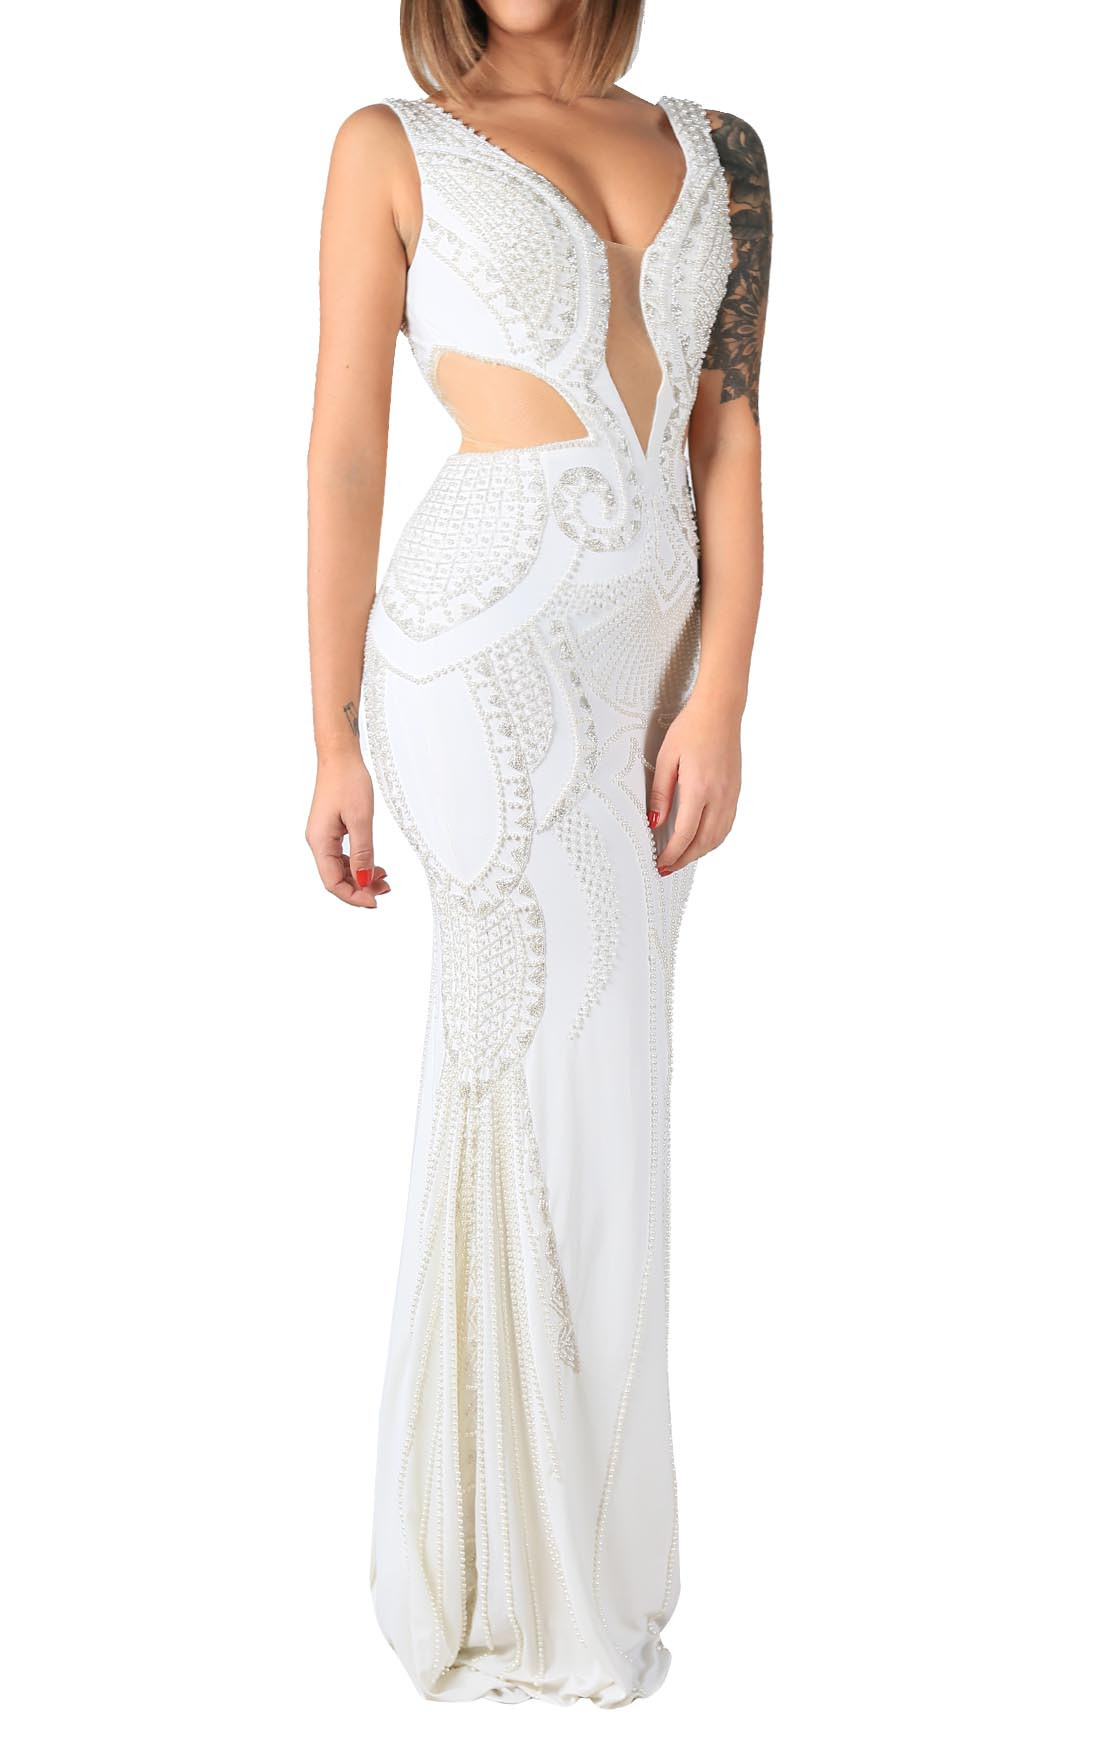 Jovani - Ivory Embellished Sleeveless Dress (41301)